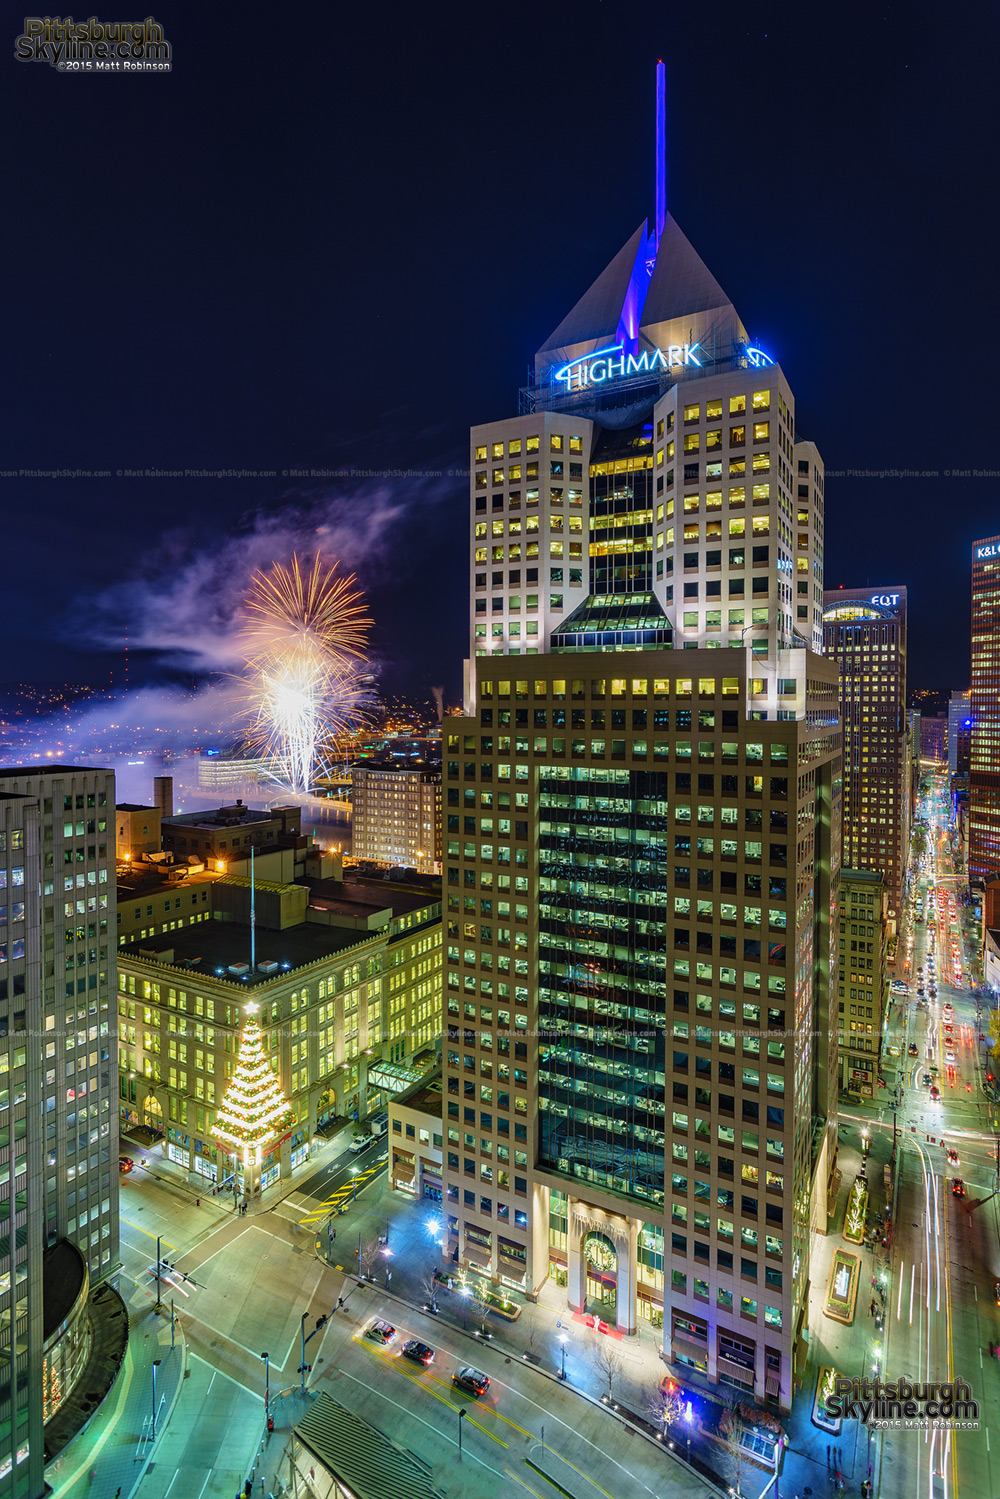 Fifth Aveneue Place Highmark Building with Fireworks on Light up night from Gateway Center Four